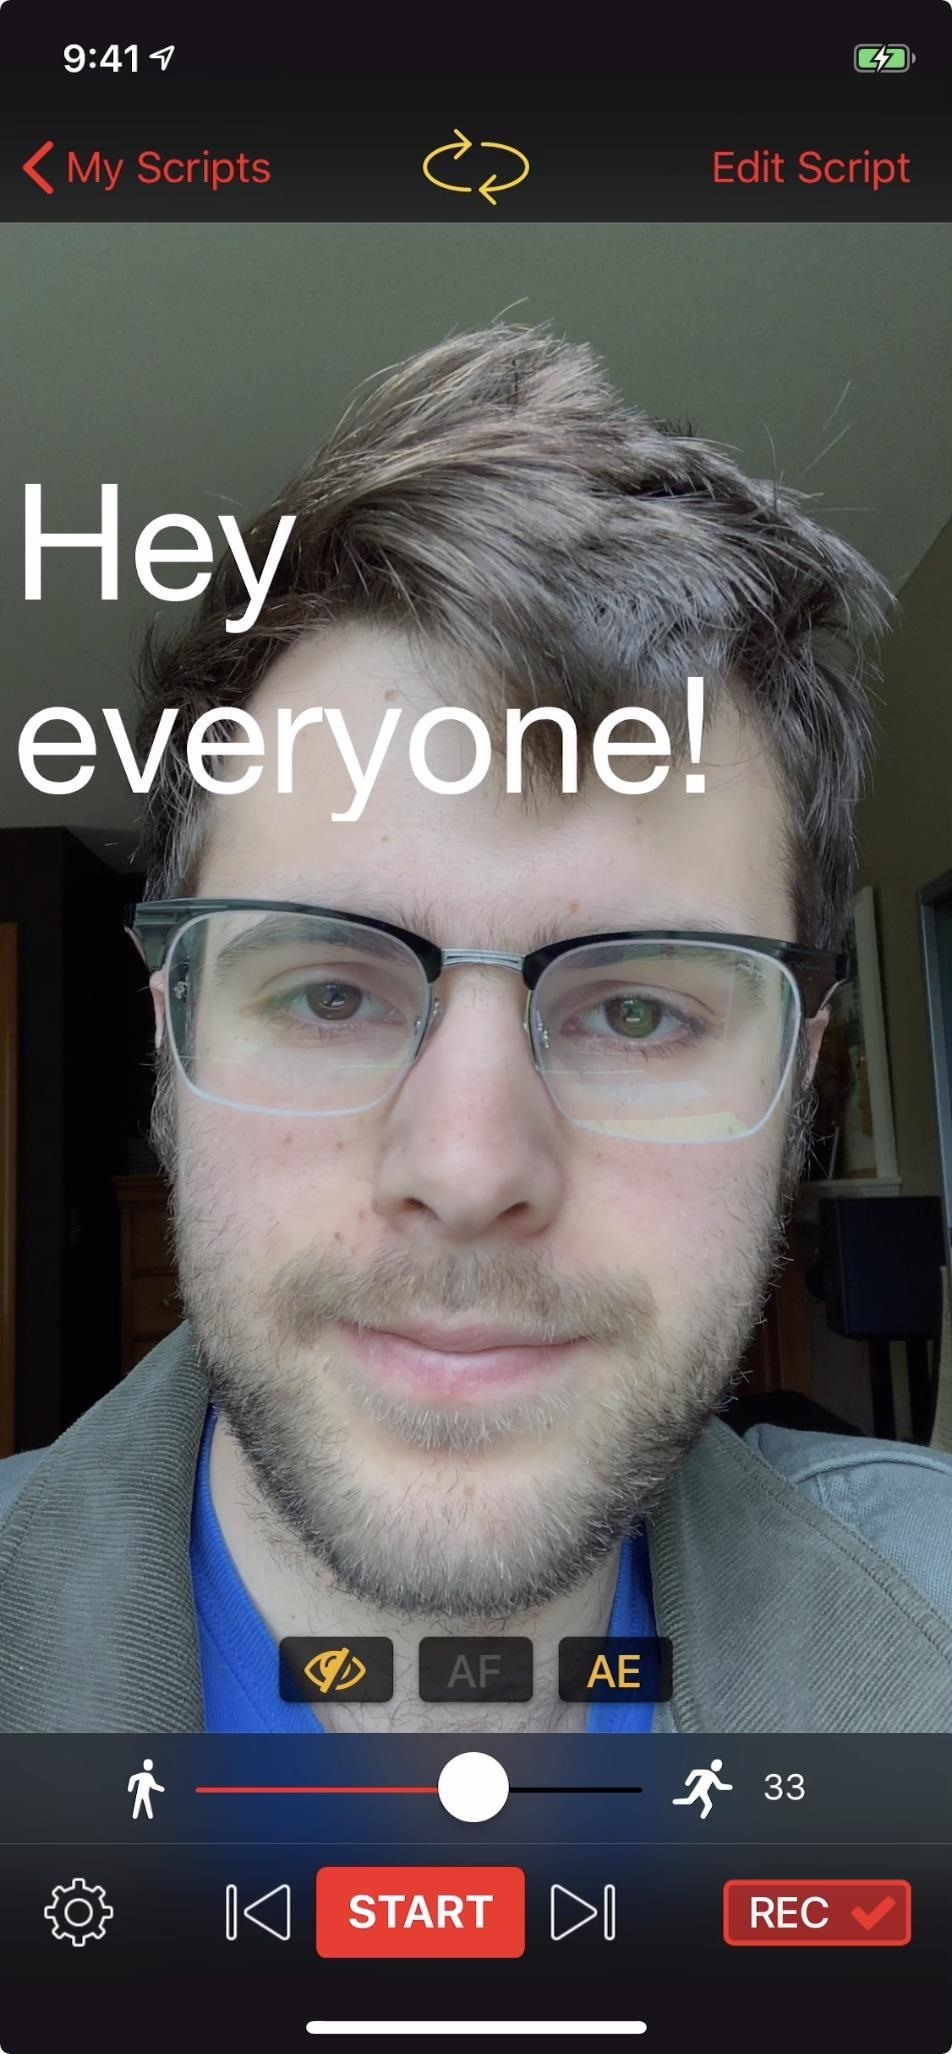 Turn your phone into a teleprompter to record self-videos without breaking eye contact